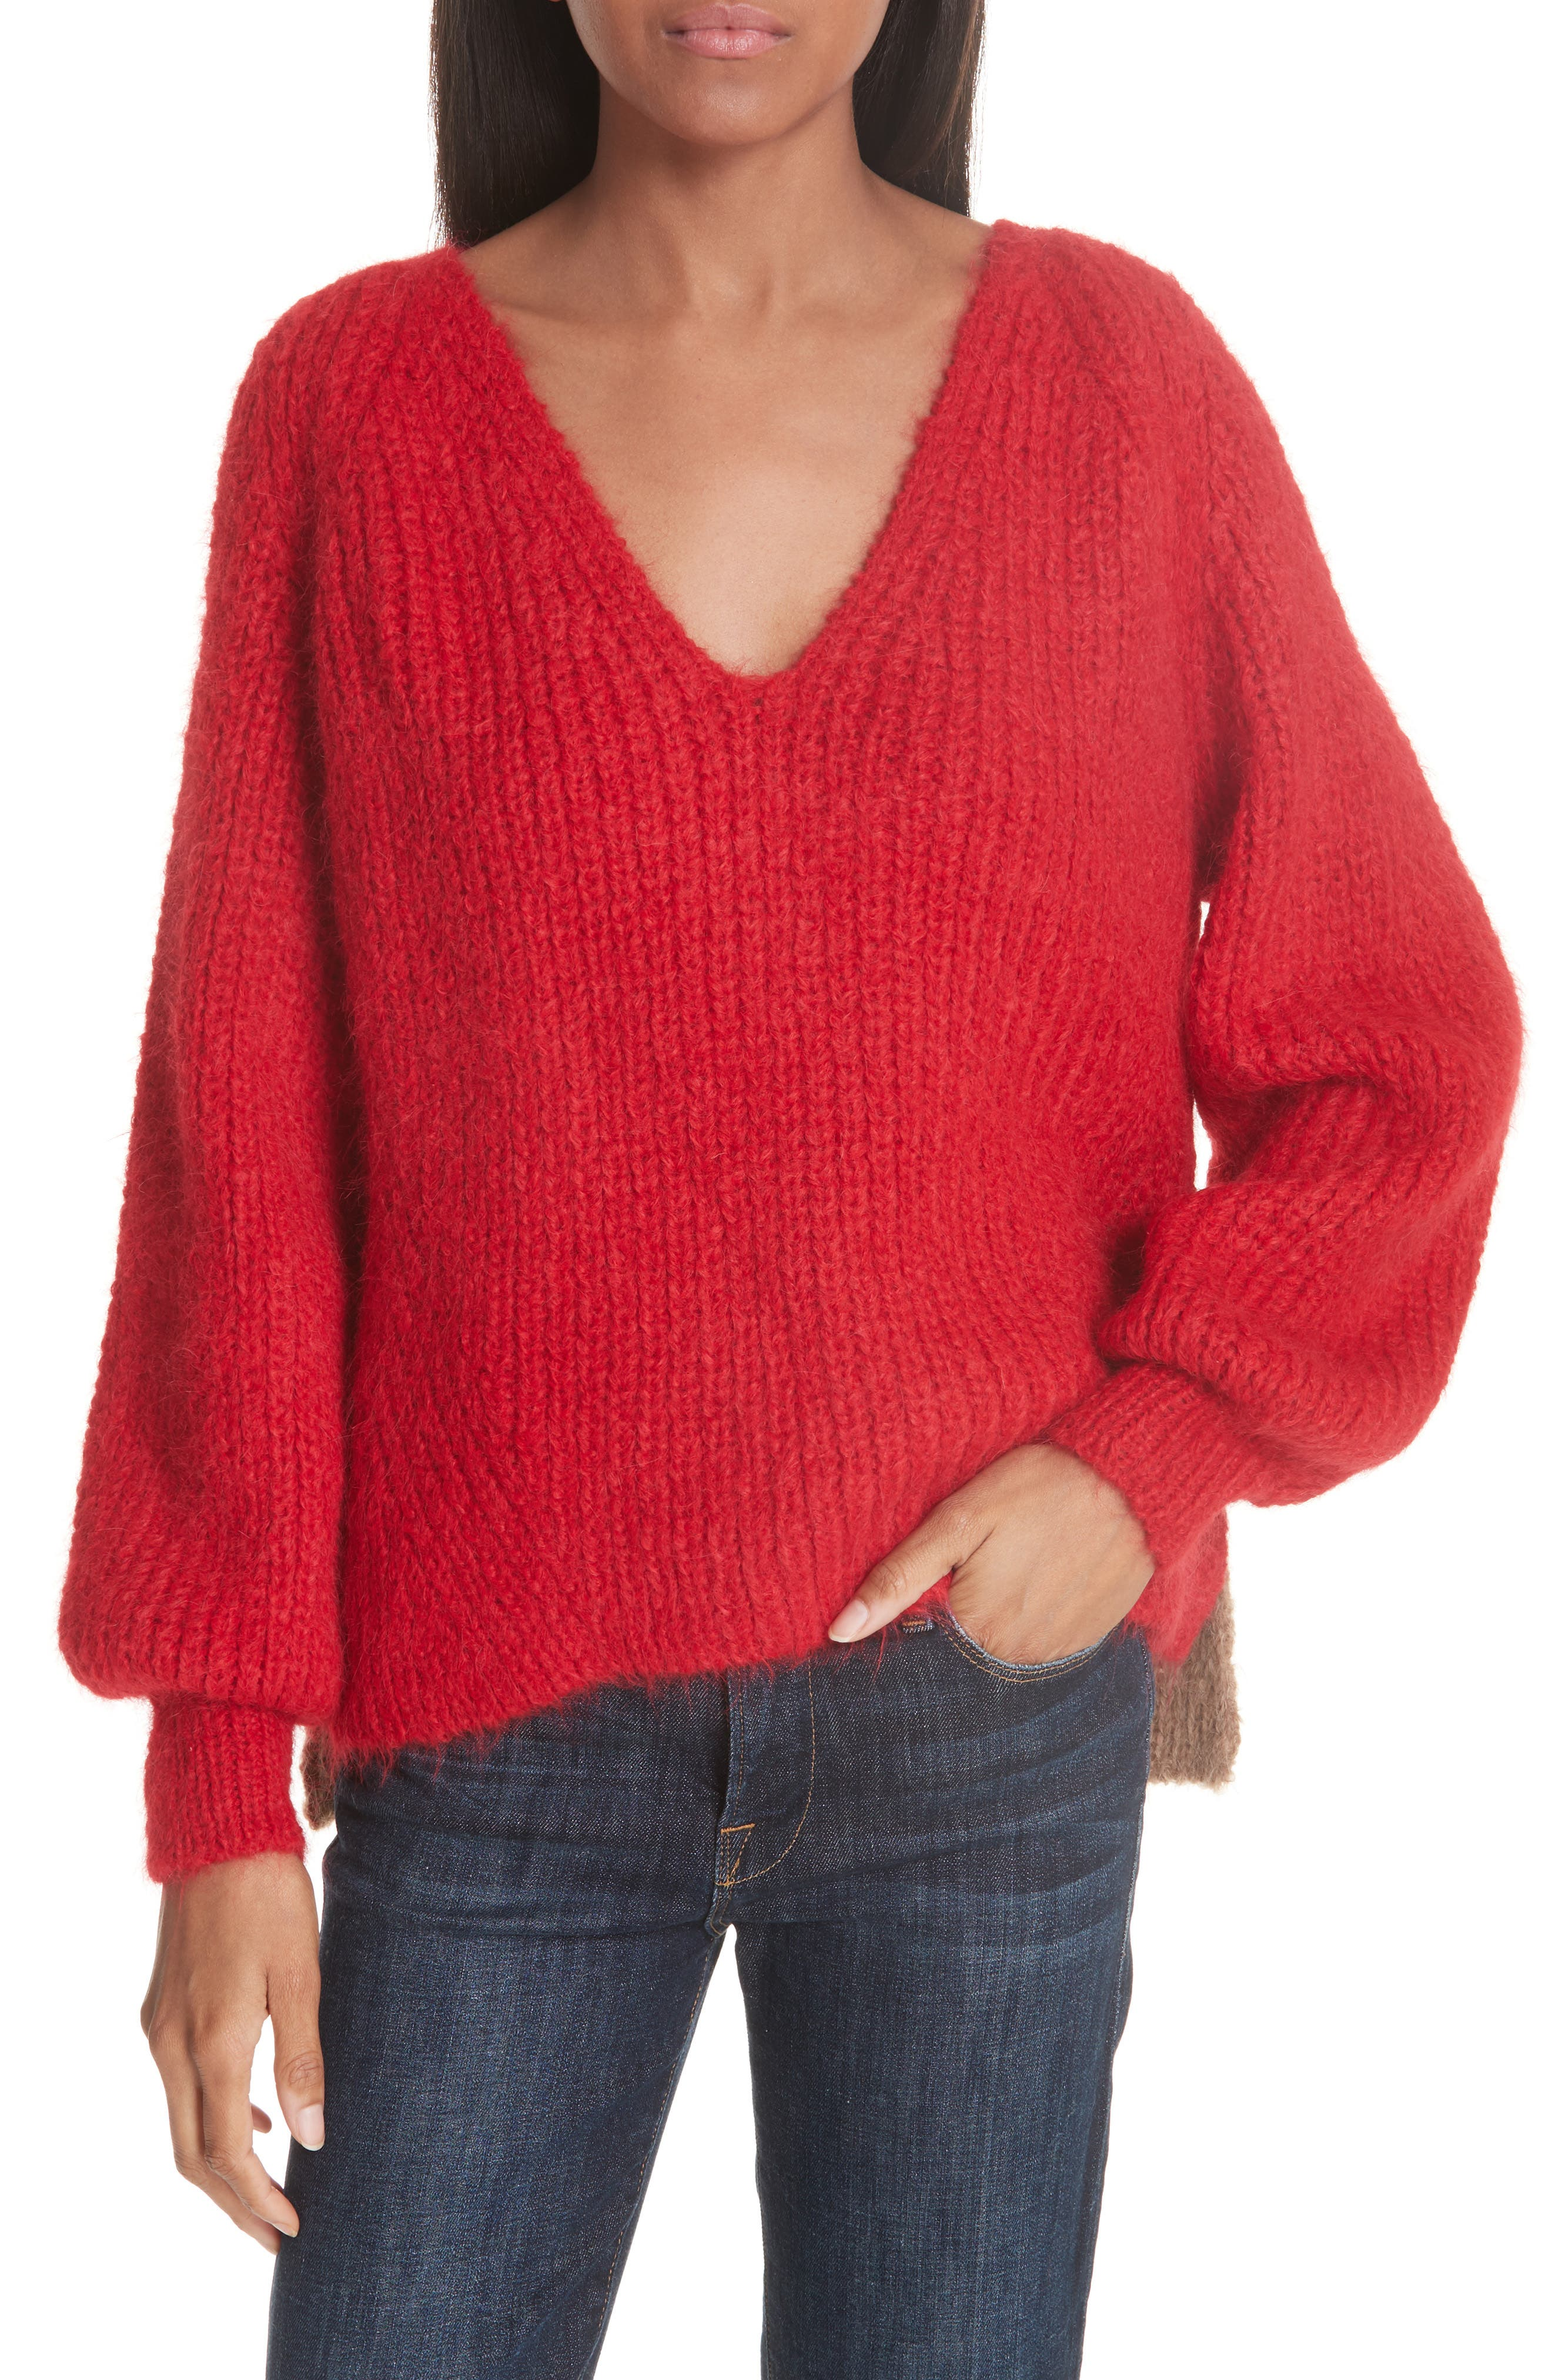 ELEVEN SIX Tess Alpaca Blend Sweater in Persimmon Red/ Vicuna Combo